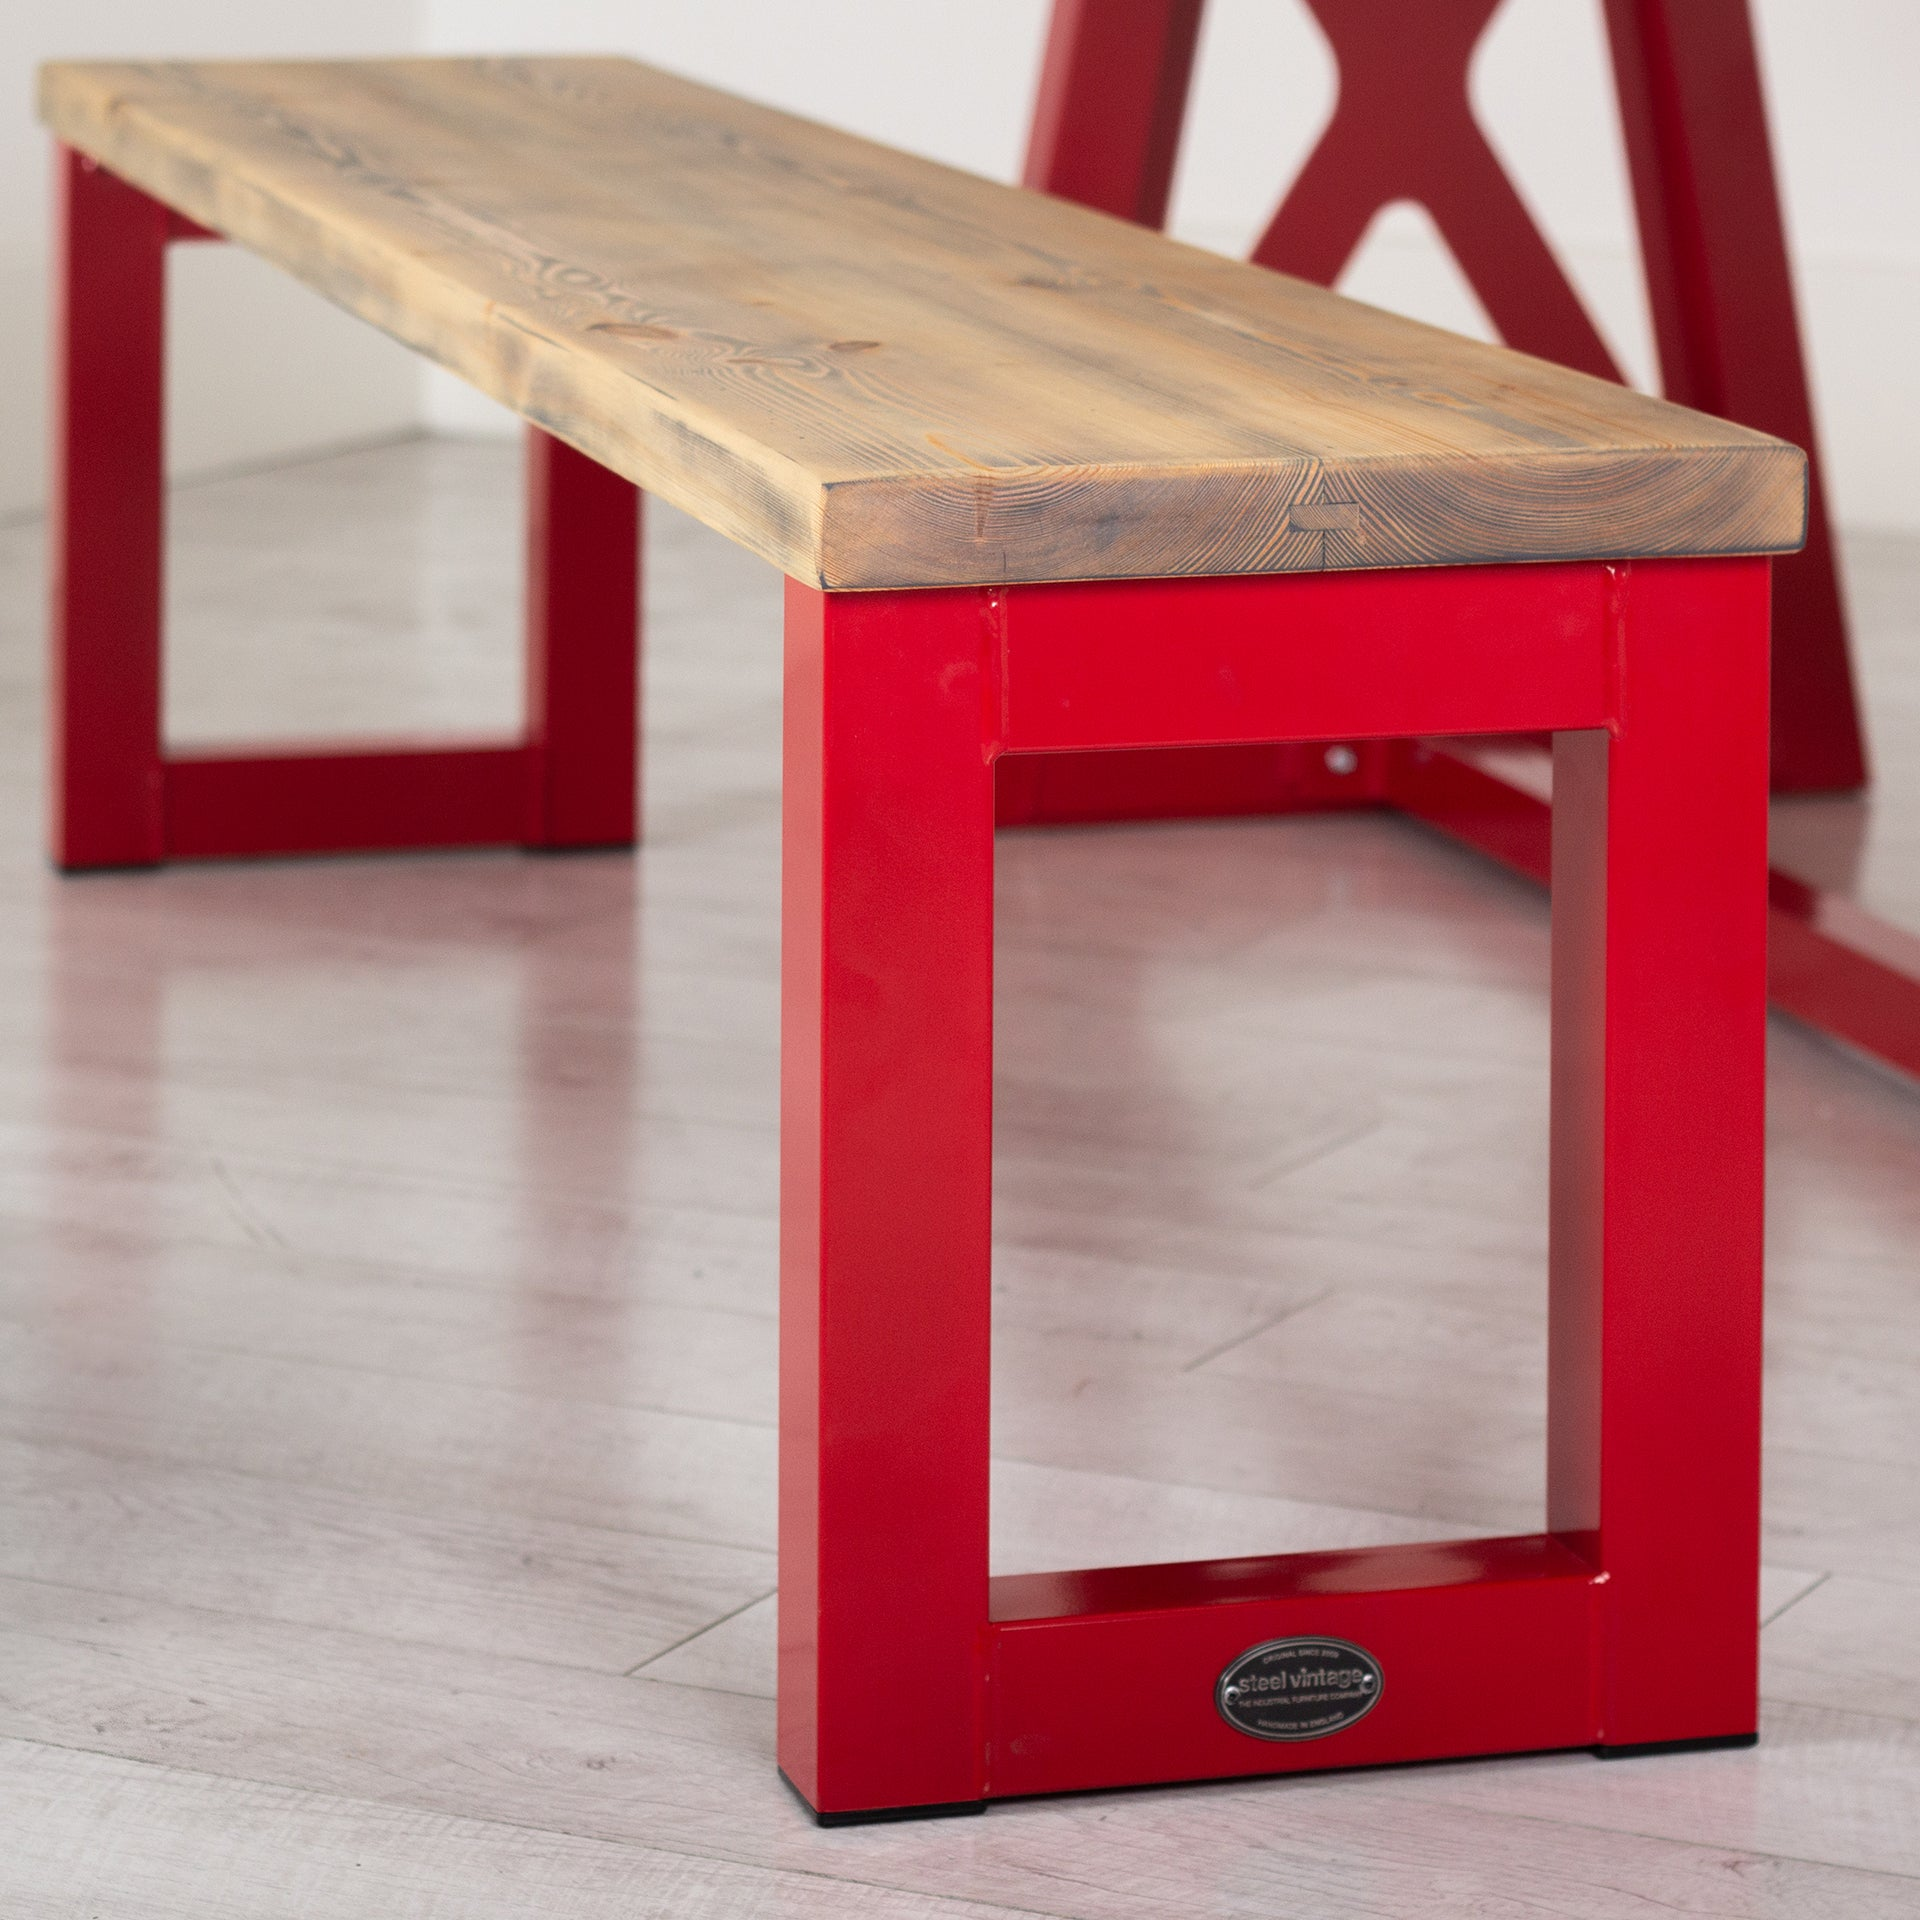 The Firehouse Table